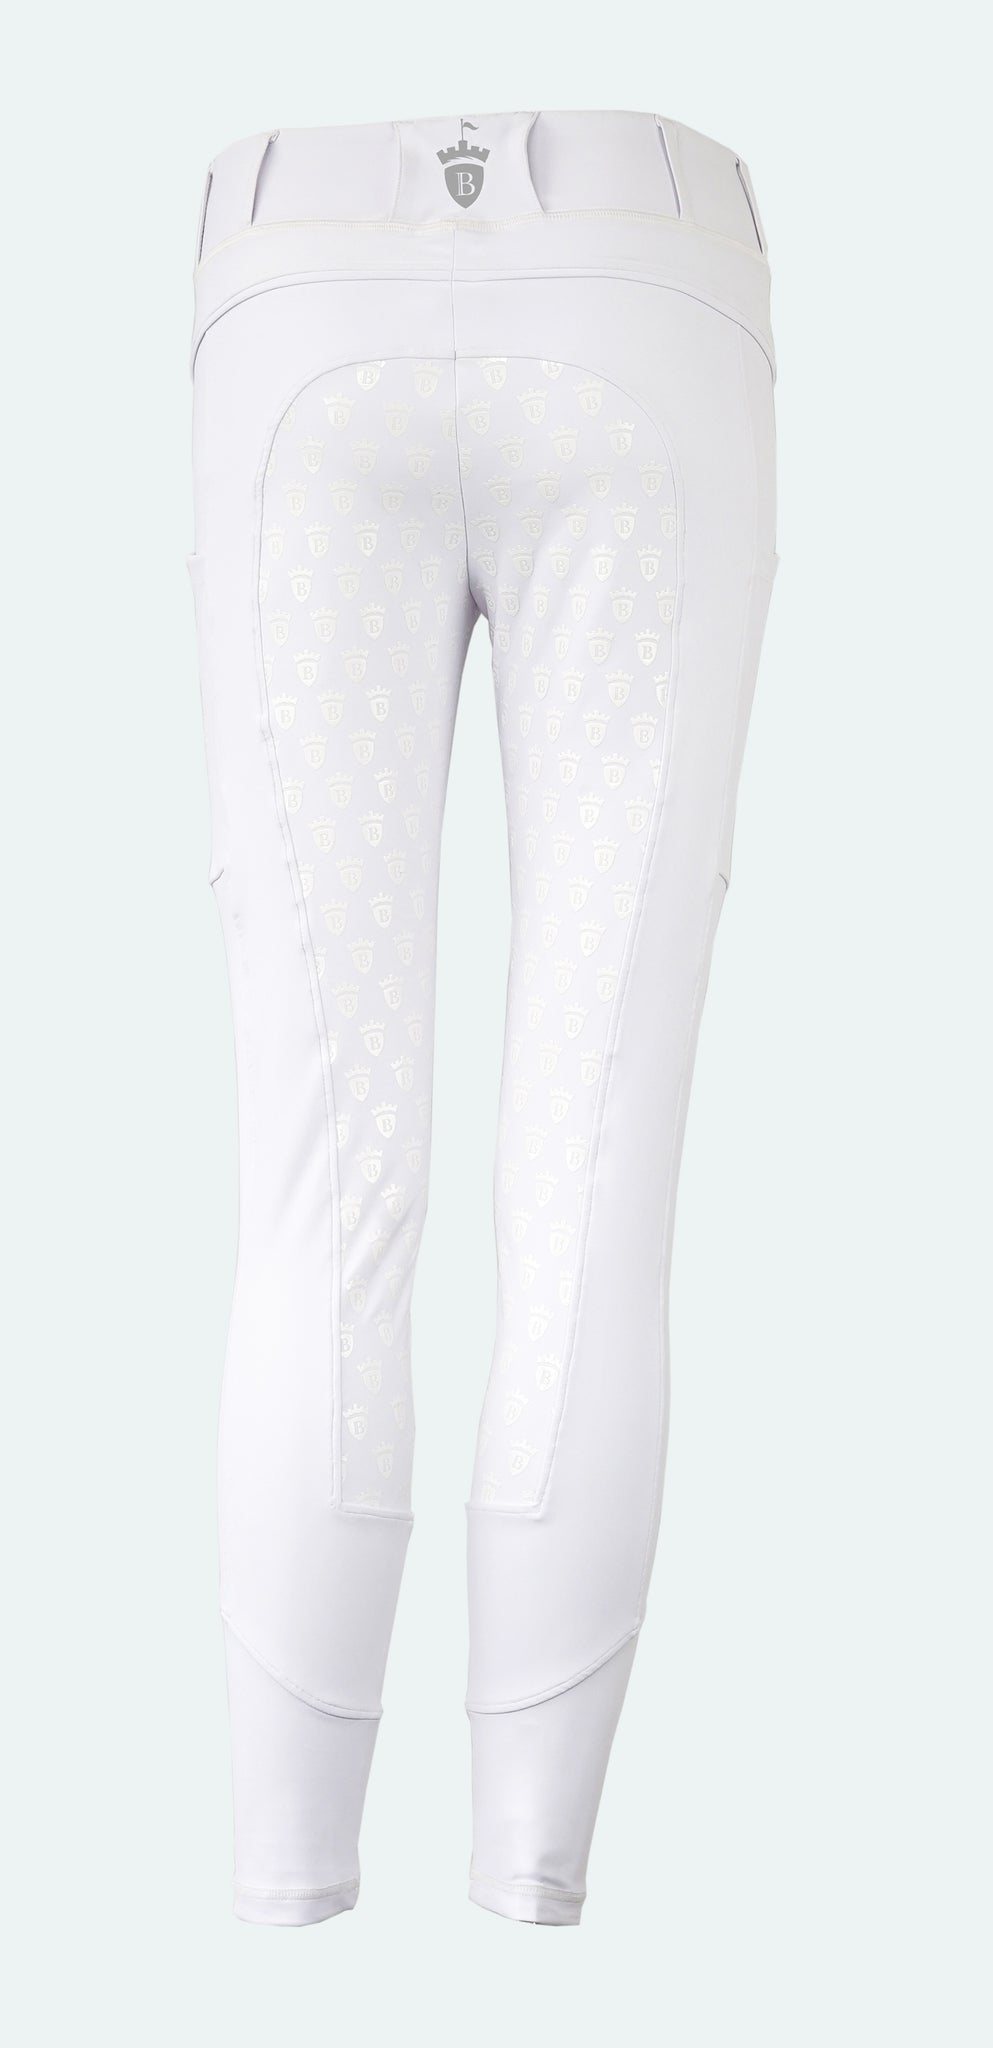 White Blackfort Equestrian Riding Competition Tights